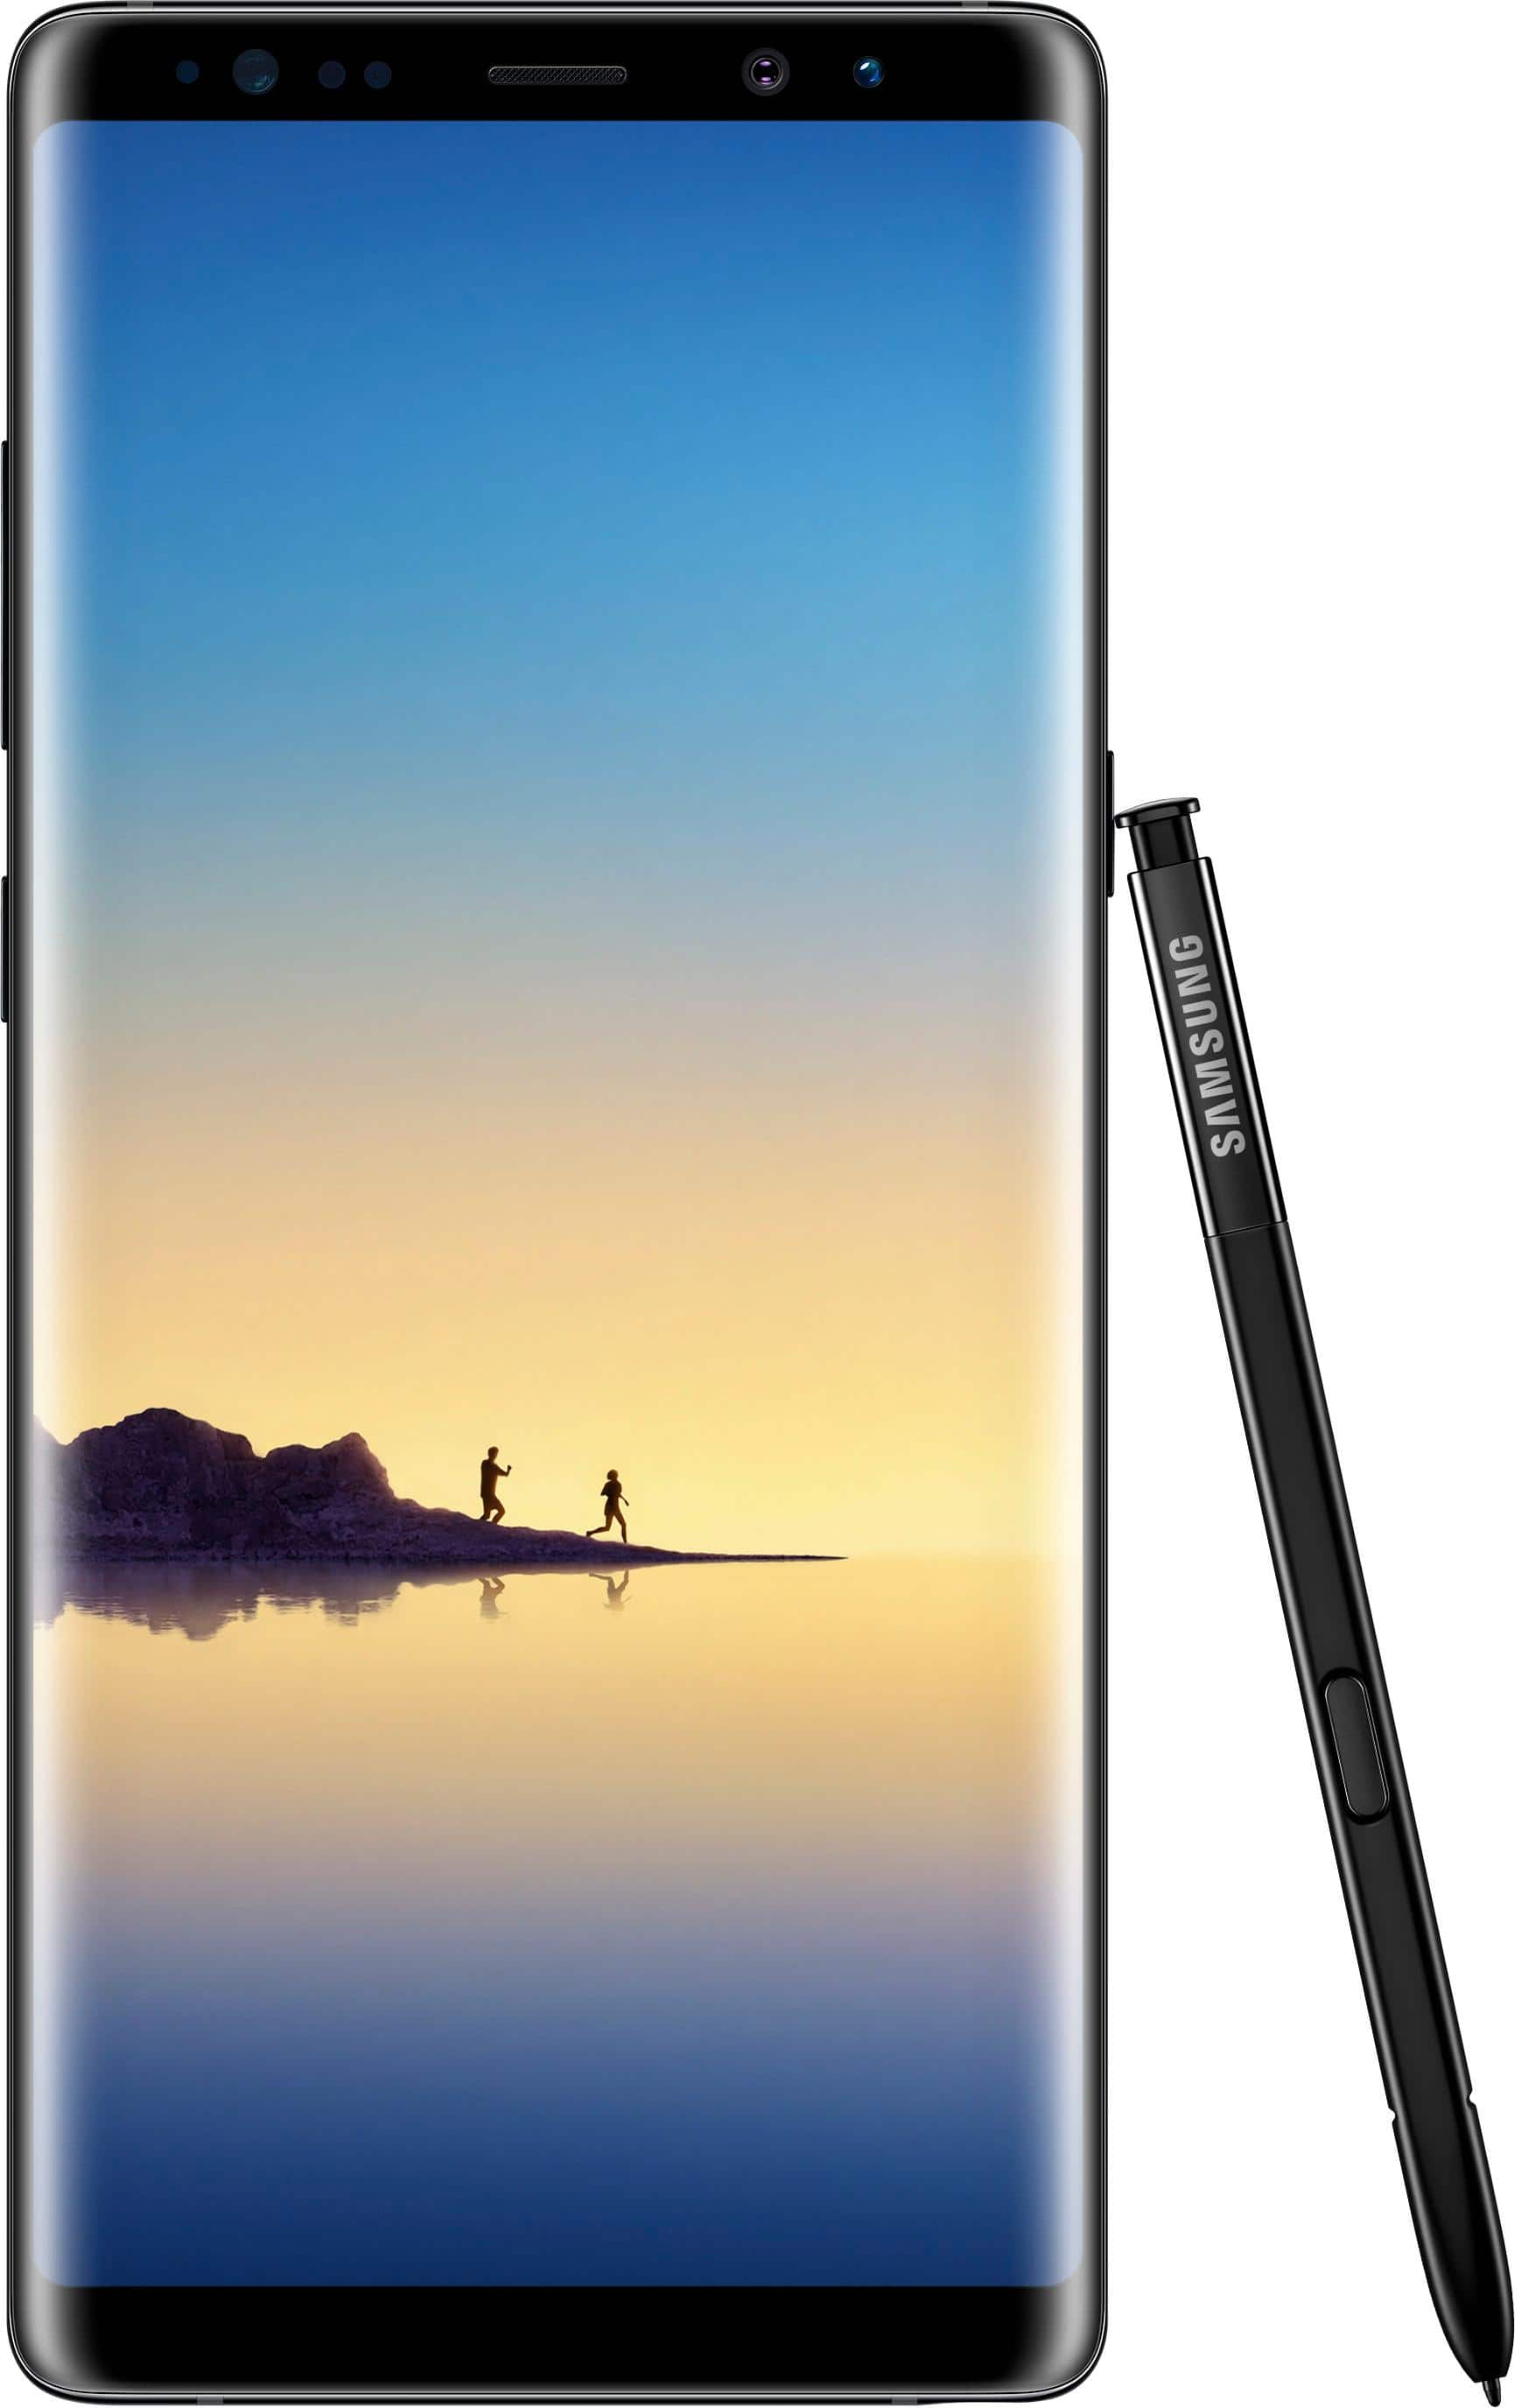 Samsung Galaxy Note 8 64GB Smartphone for Sprint (various colors) $360 with Activation. Free Shipping and Free Store Pickup.